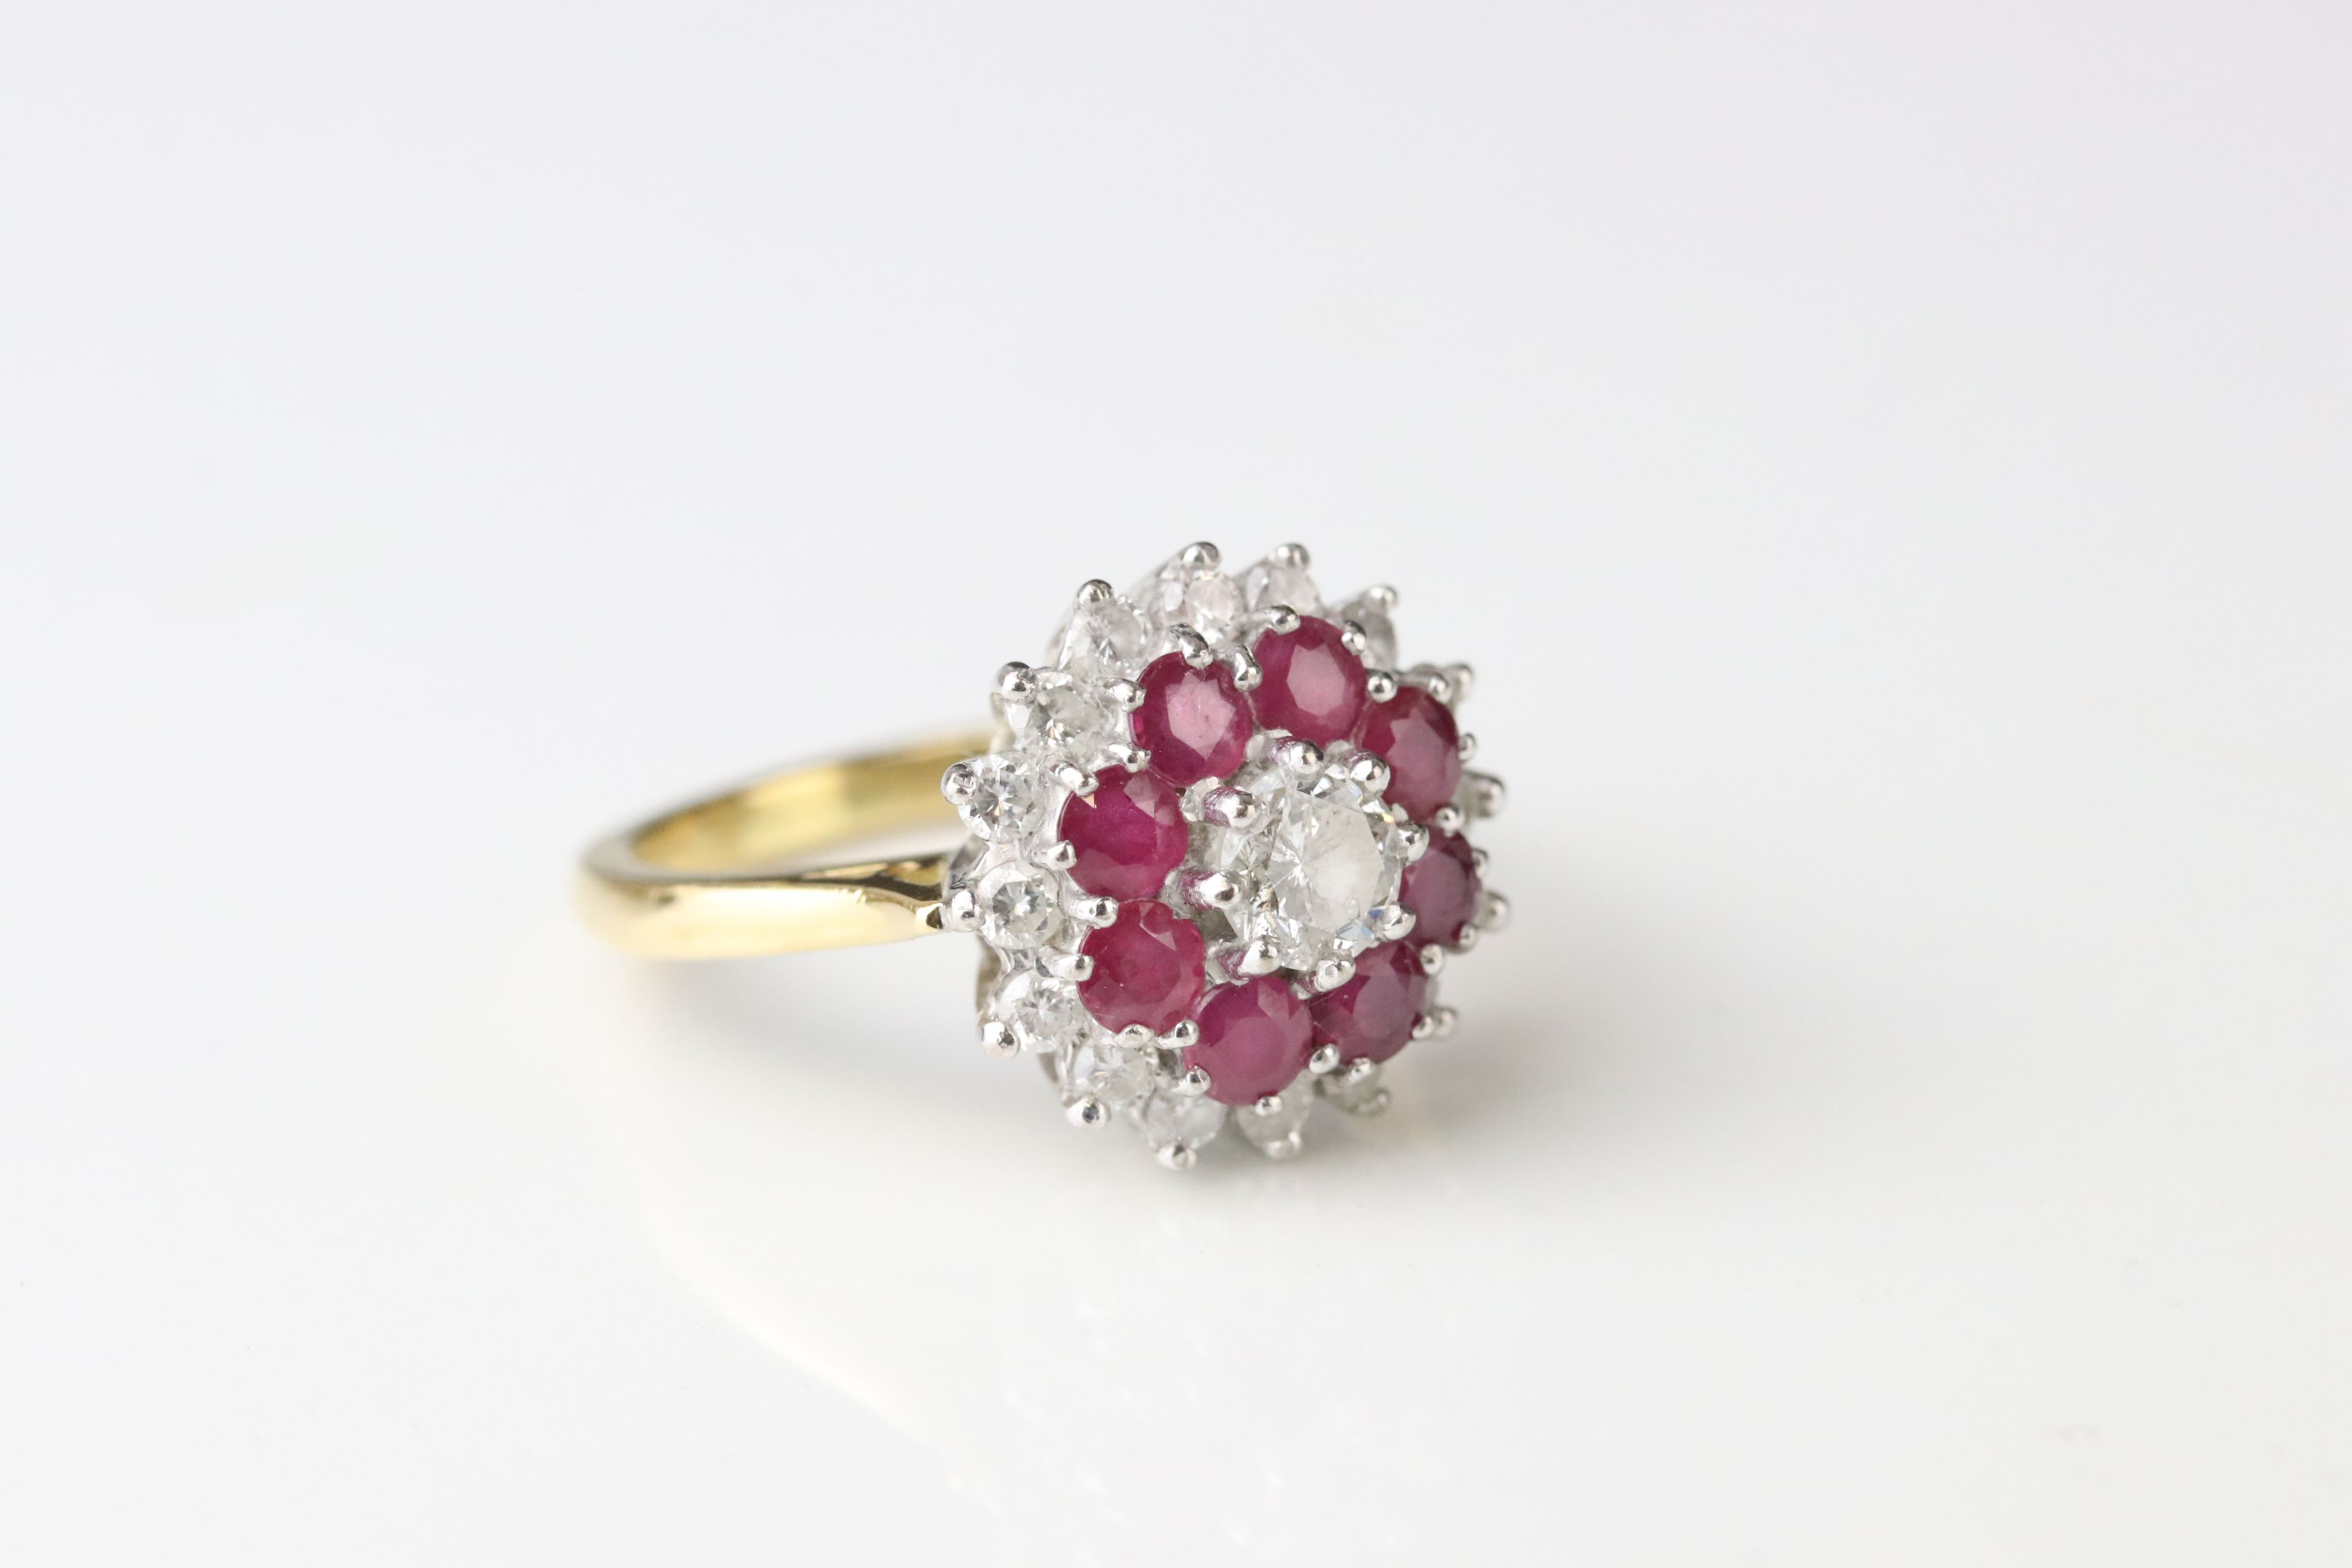 Diamond and ruby three tier 18ct yellow gold and white gold set cluster ring, the principle